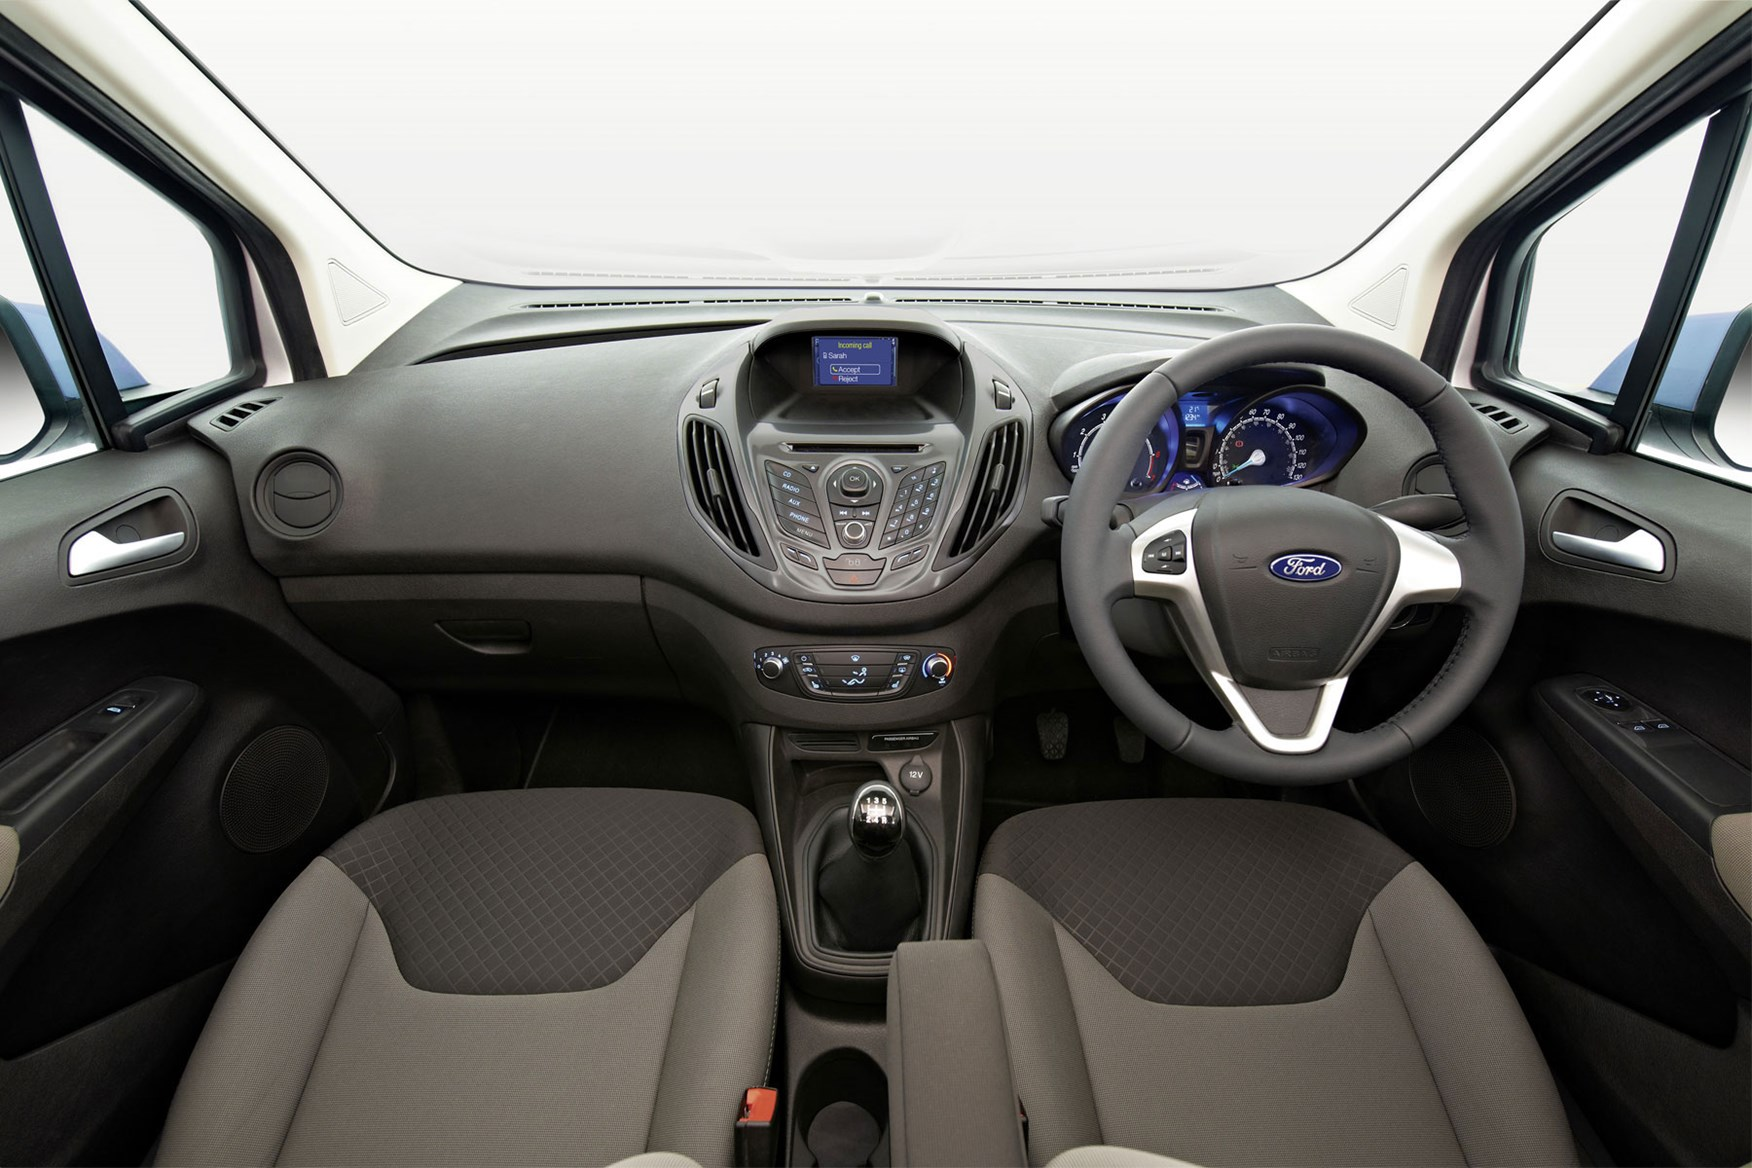 Ford Transit Courier review - cab interior pre facelift